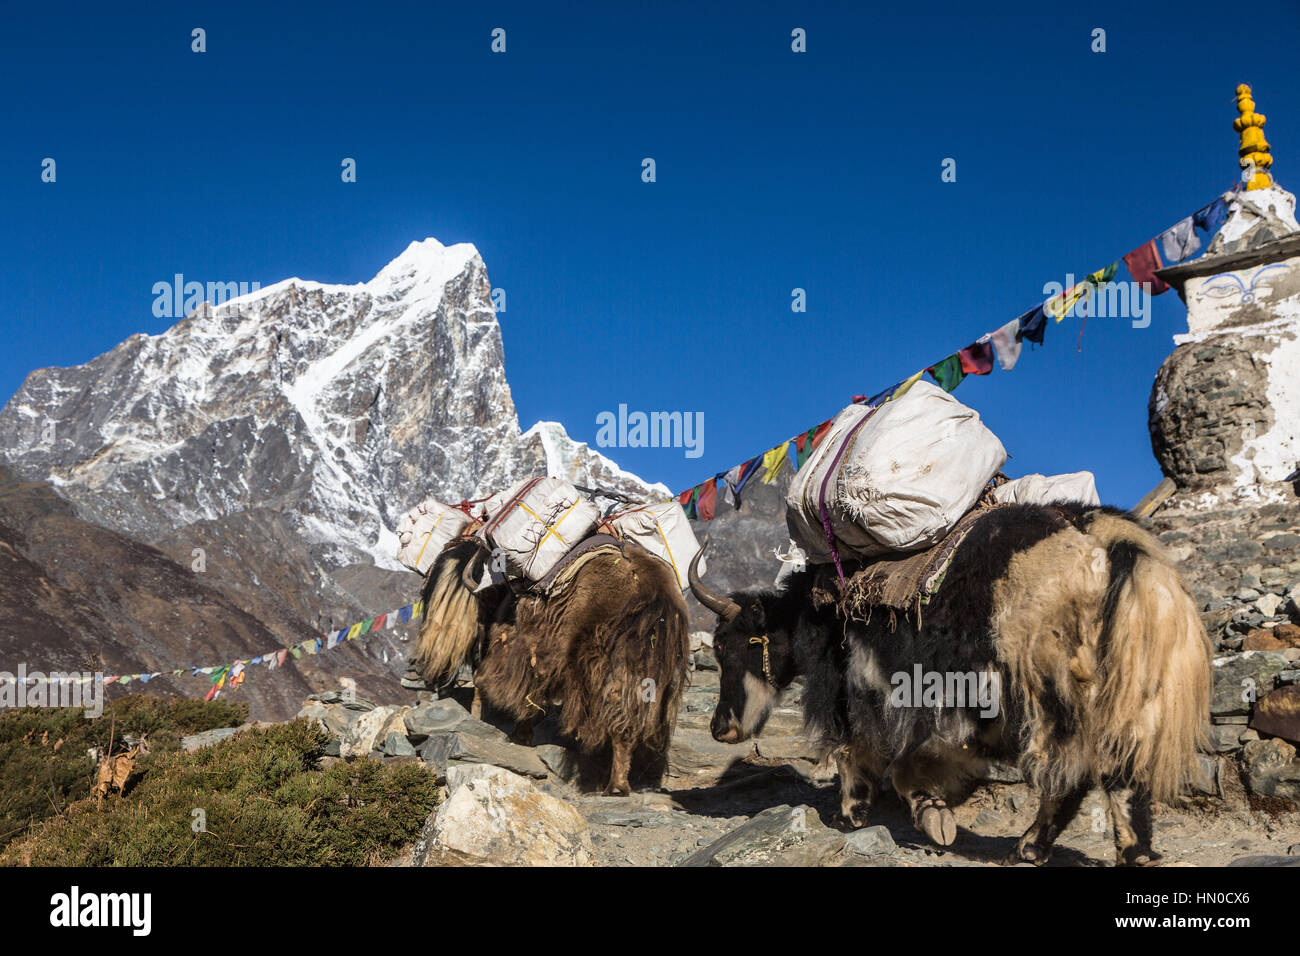 Yaks carrying goods above the Dingboche (4800m) on the way to Everest Base camp in the Khumbu region of Nepal. The - Stock Image